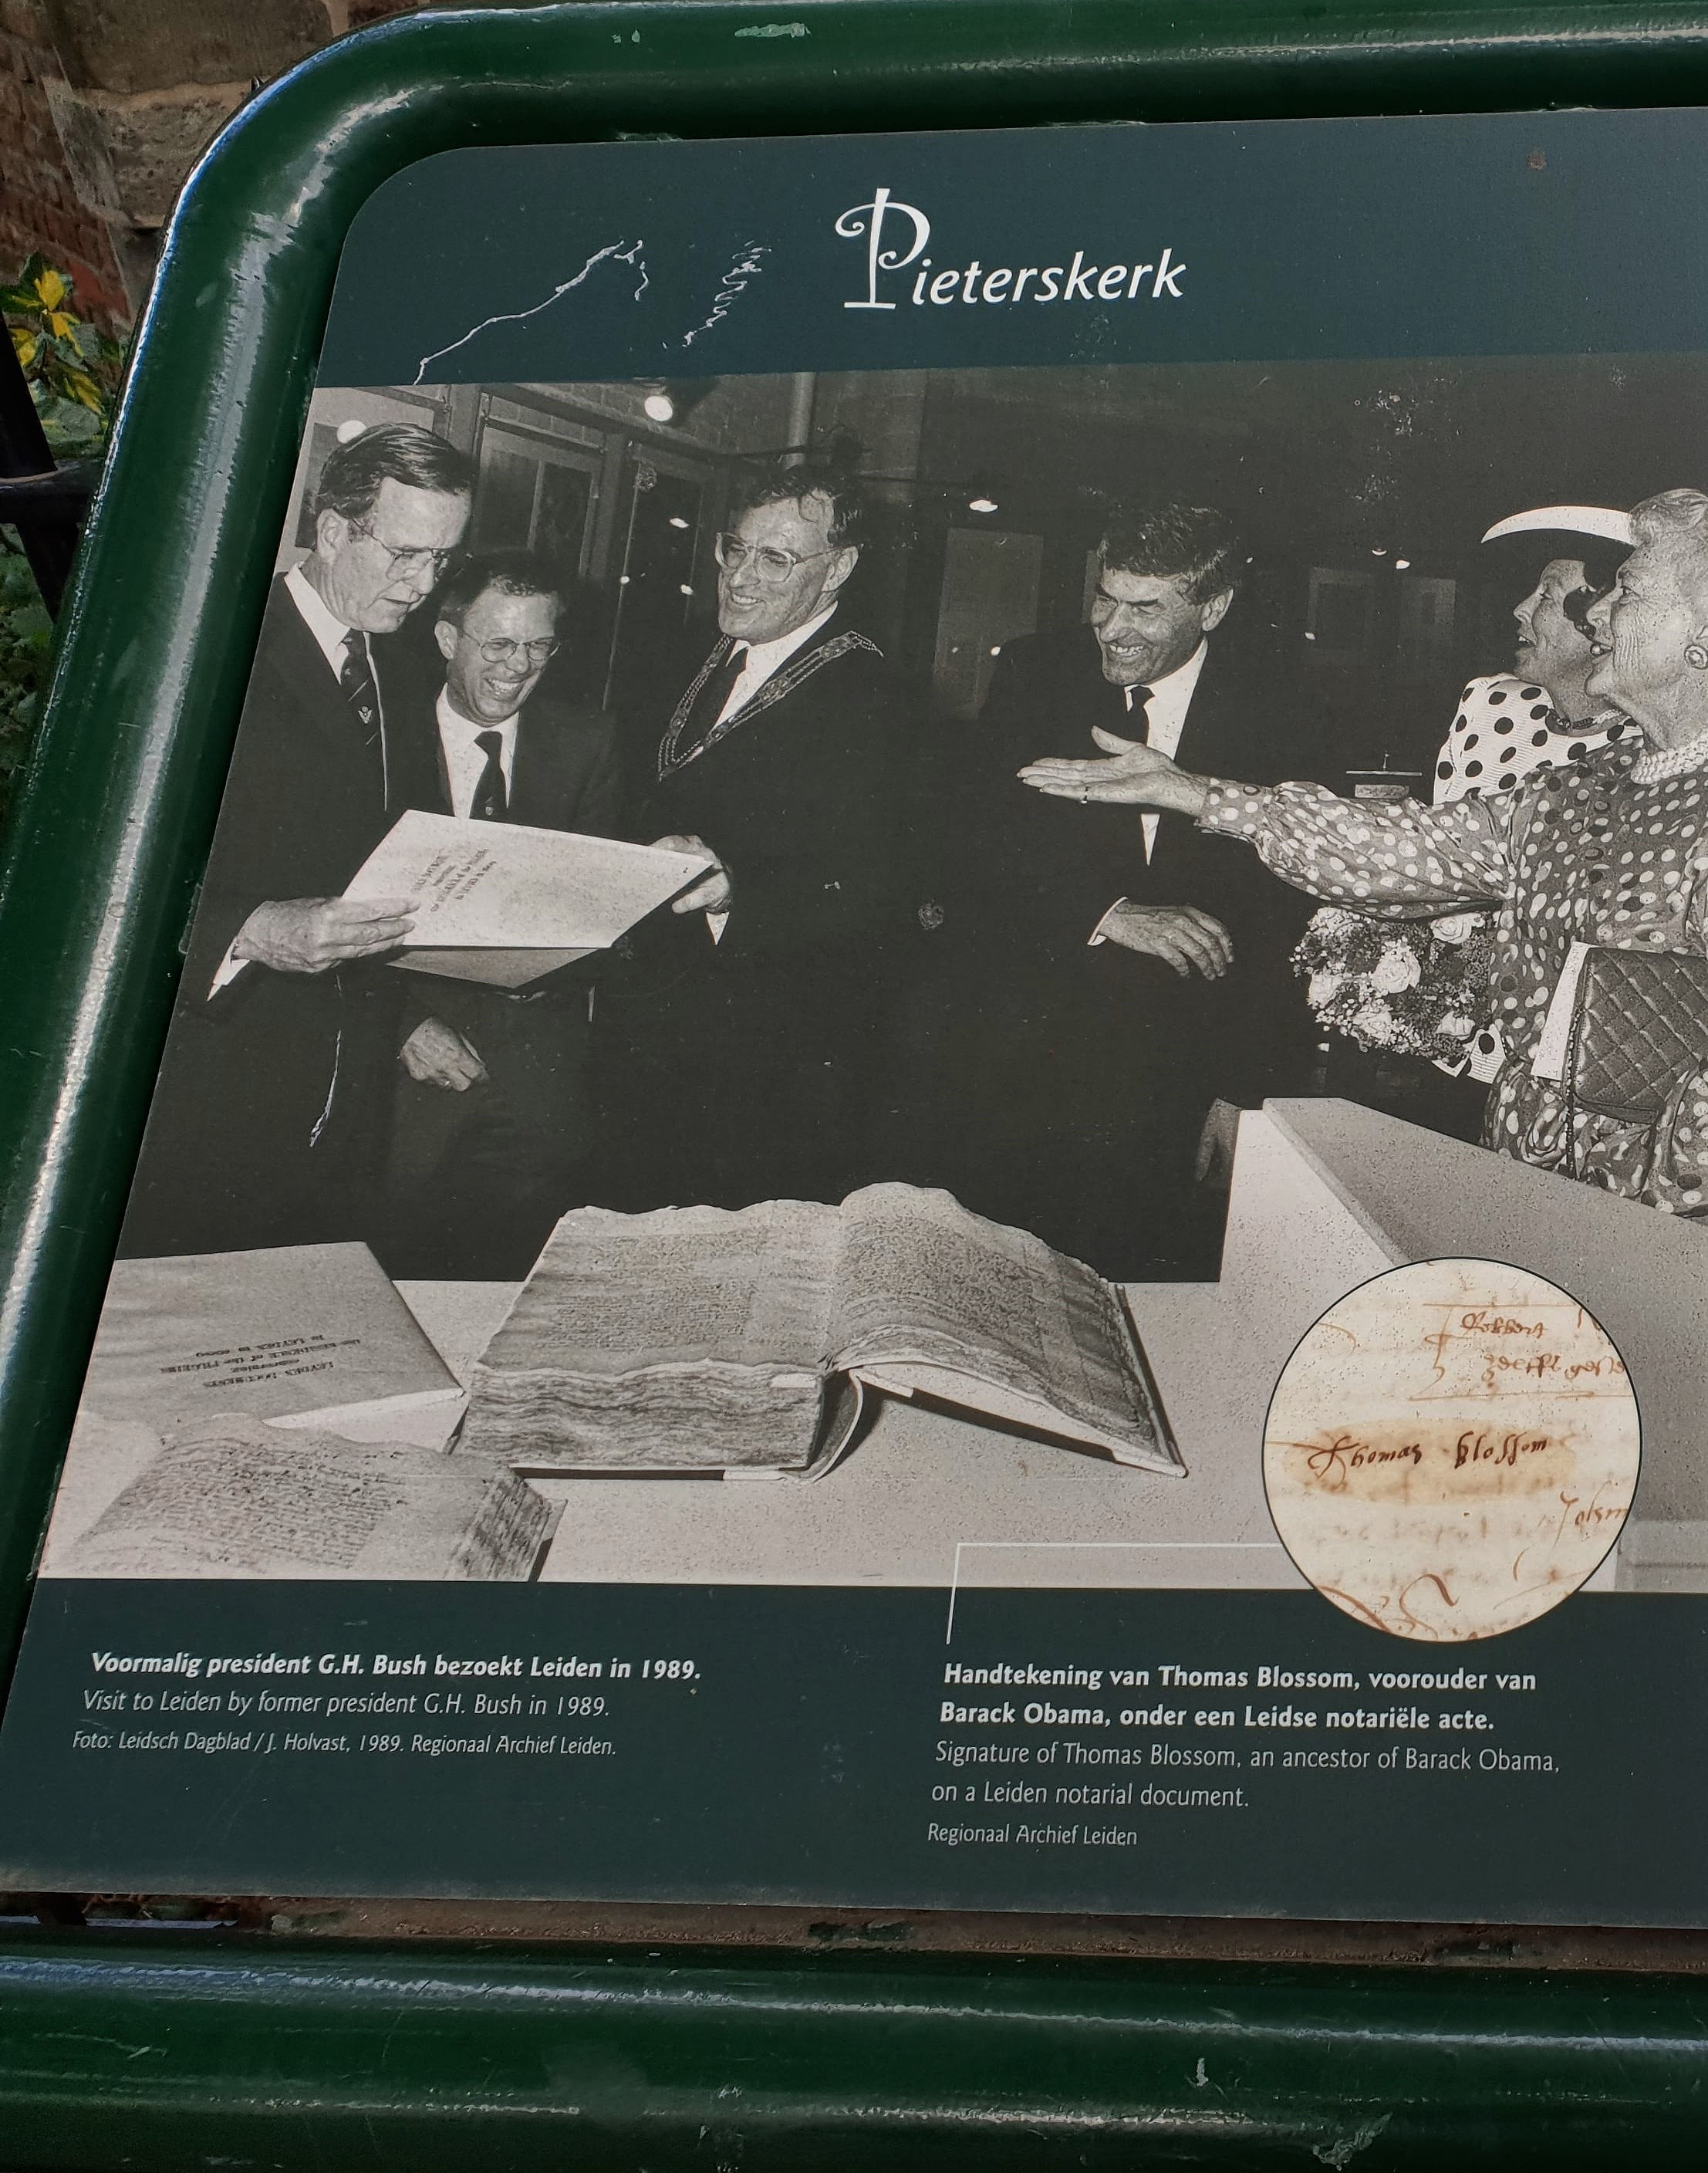 Leiden poster showing visit of President Bush